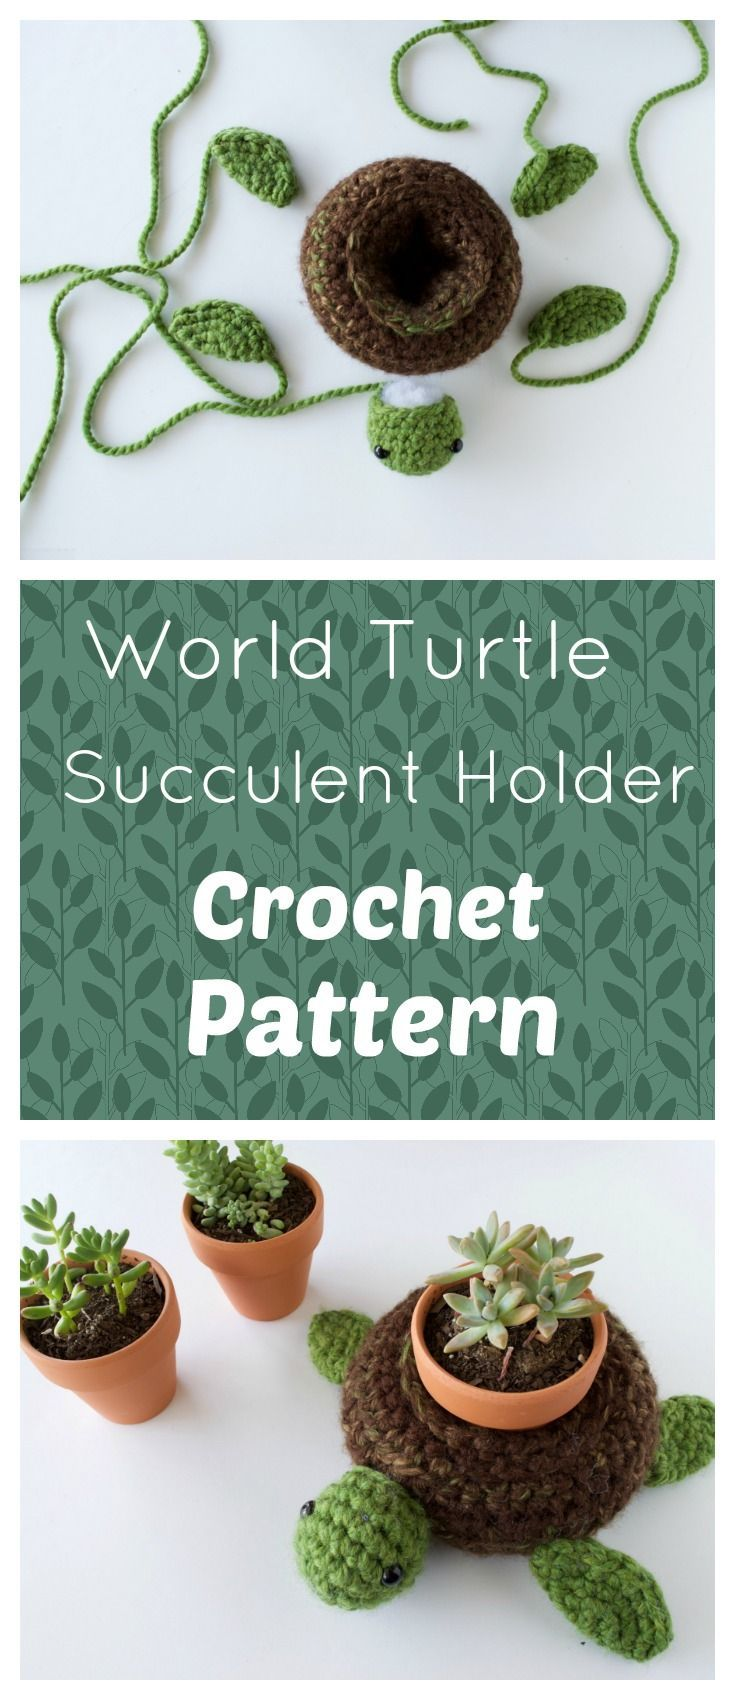 Best 25+ Crochet world ideas on Pinterest | Crochet bow pattern ...